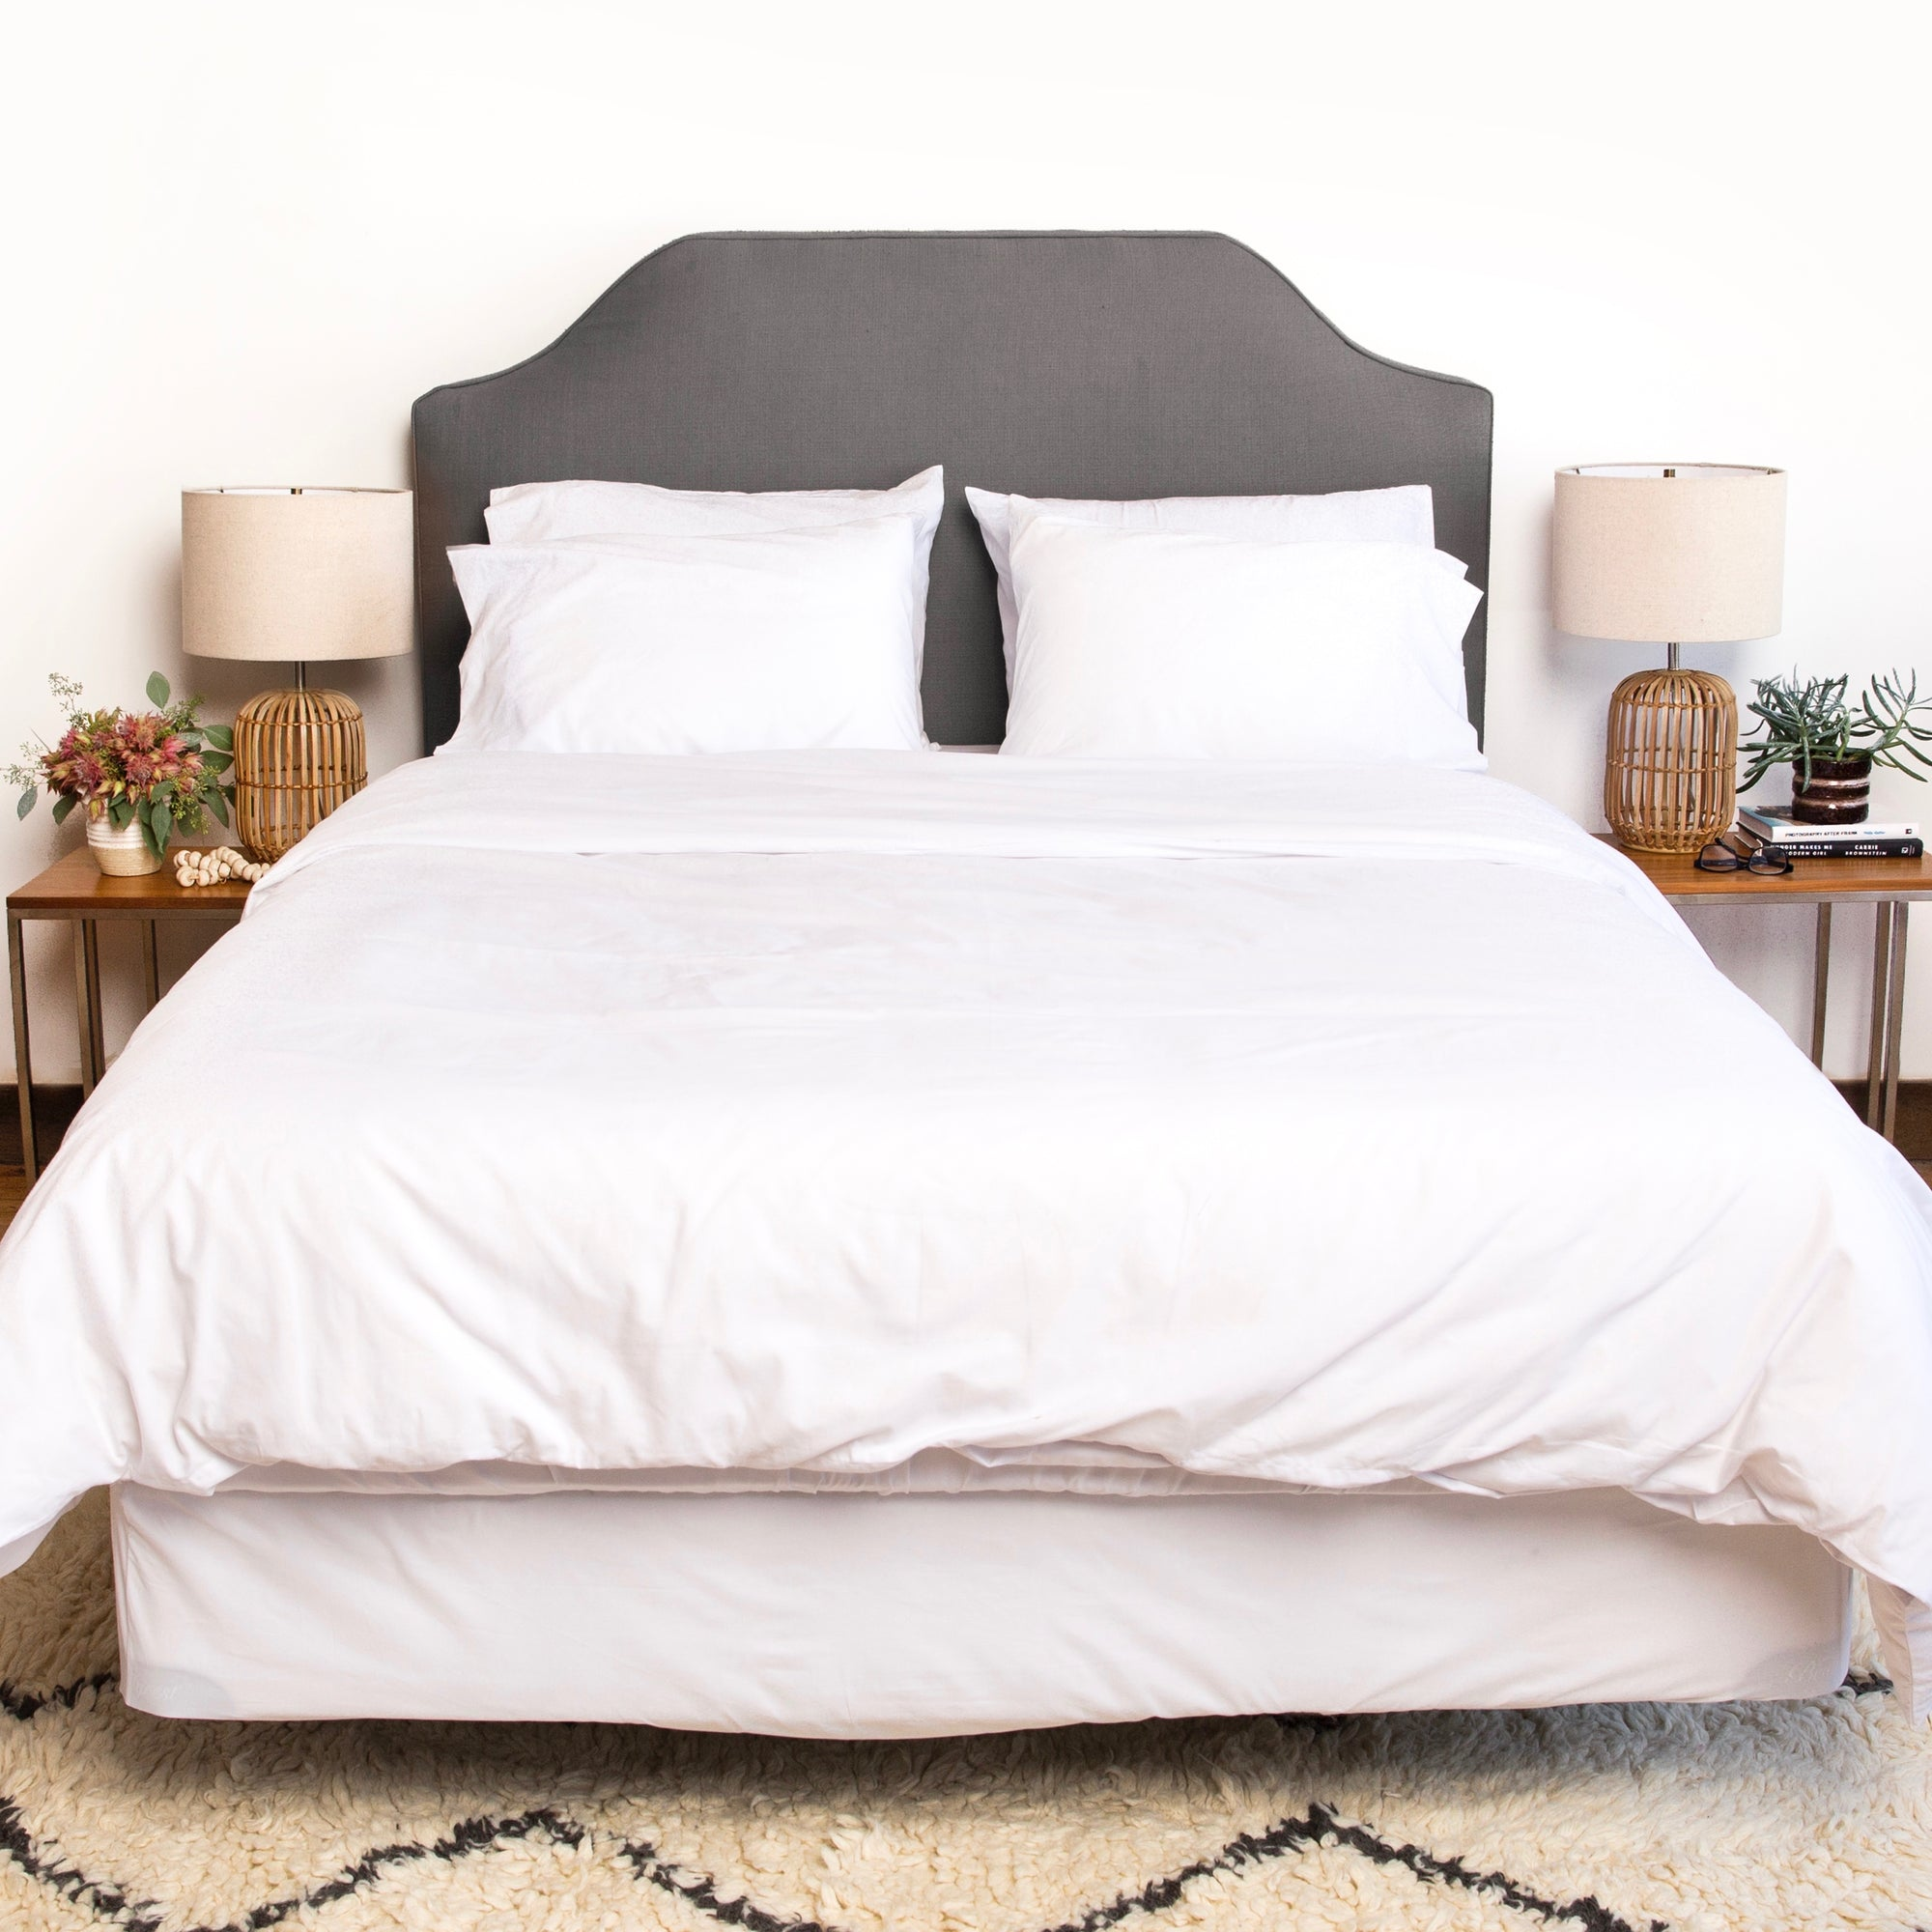 Made in USA Bed Sheets from Supima pima cotton